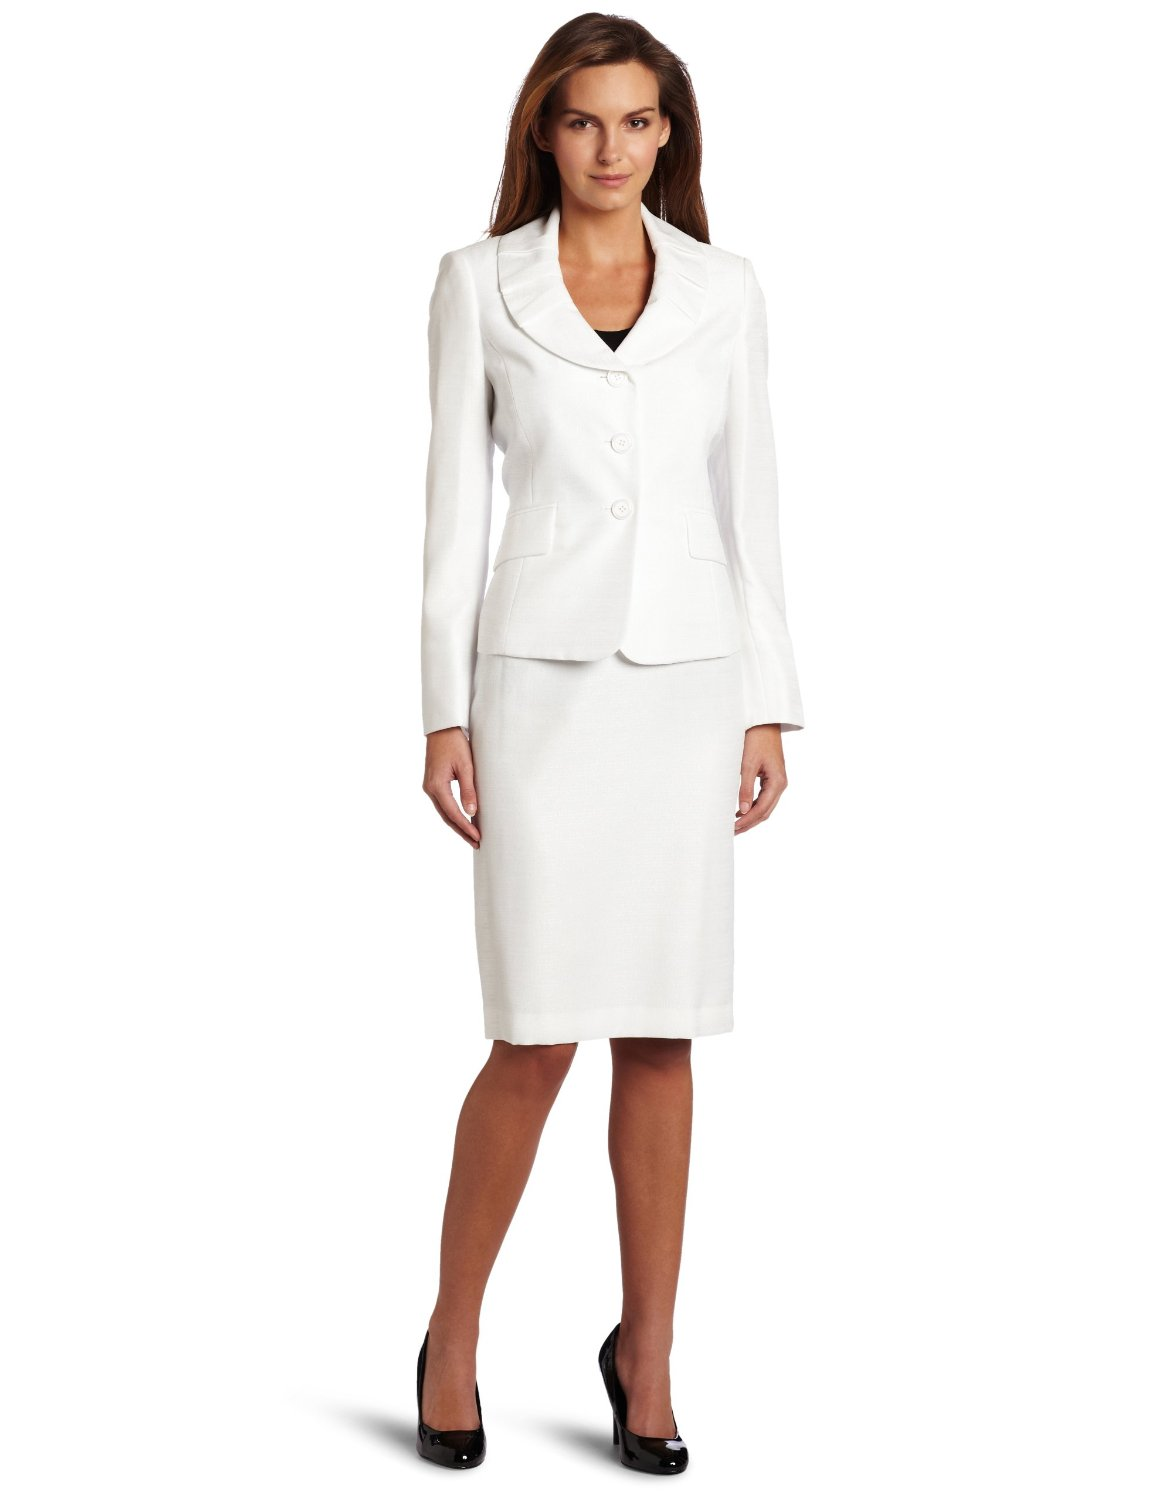 Business Casual for Women How you dress says a lot about your personality, especially in the workplace. When you're in a position, no matter what it is, you always want to look your best, you never know what opportunities could come your way, and you certainly want to look professional at all times.